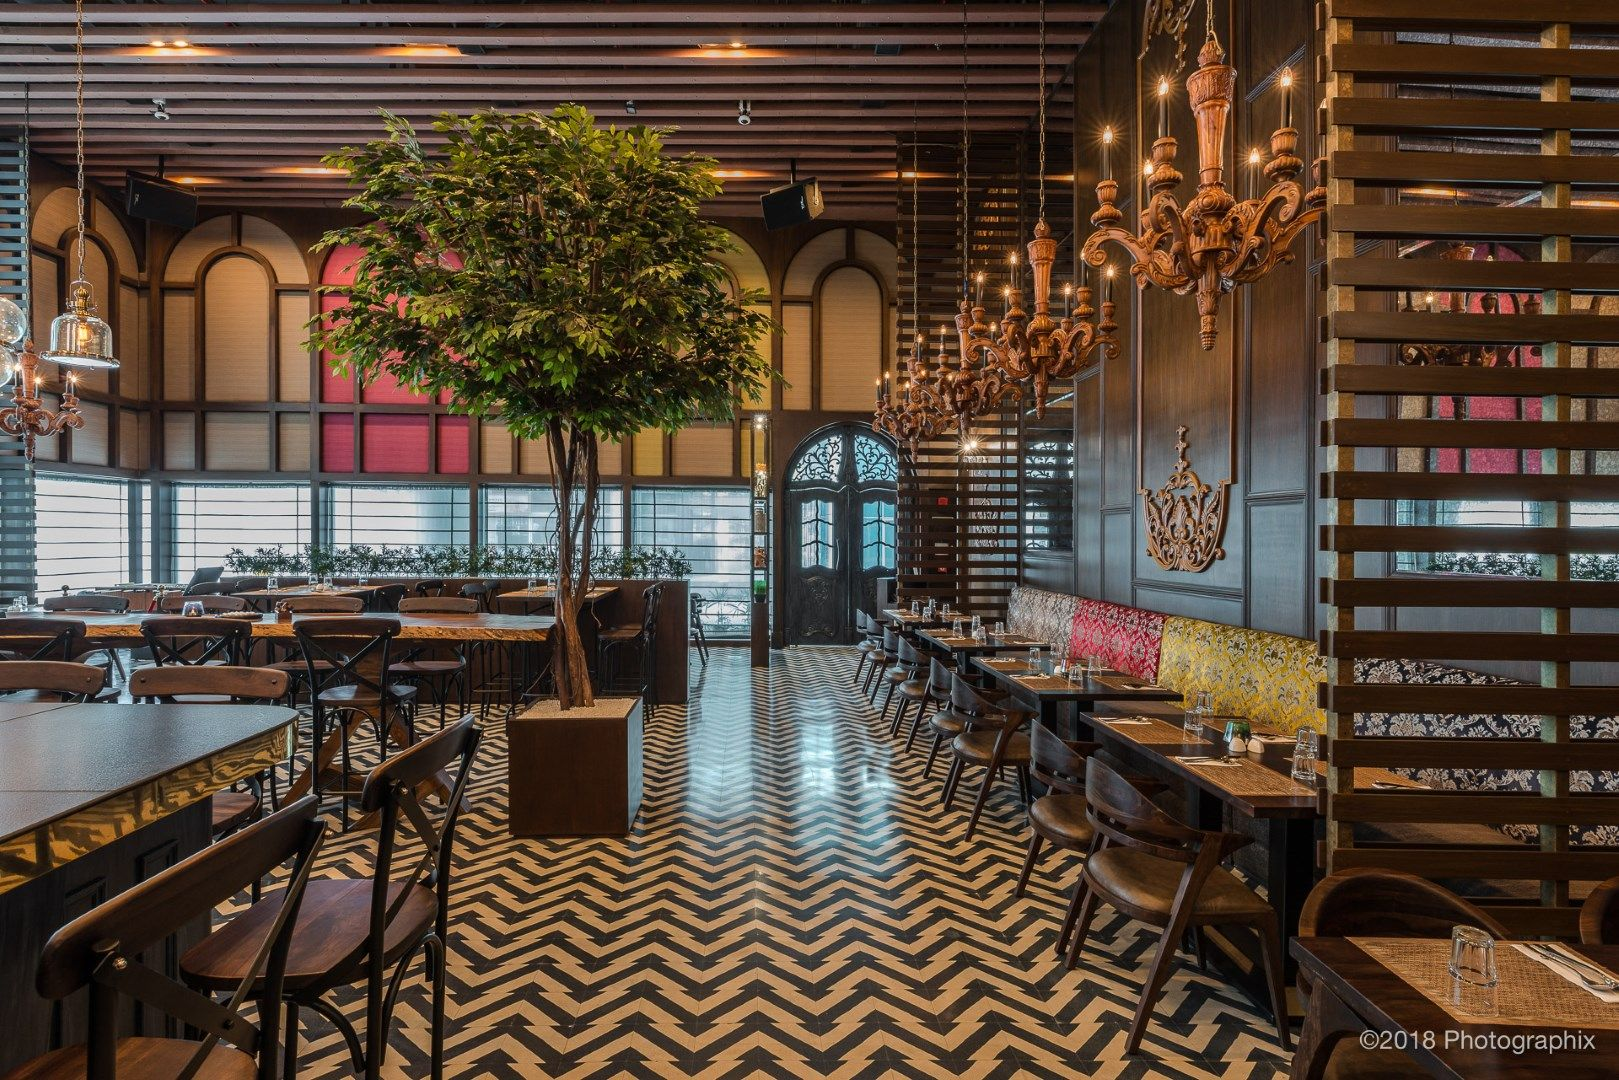 Restaurant Design – When Classic Meets Contemporary